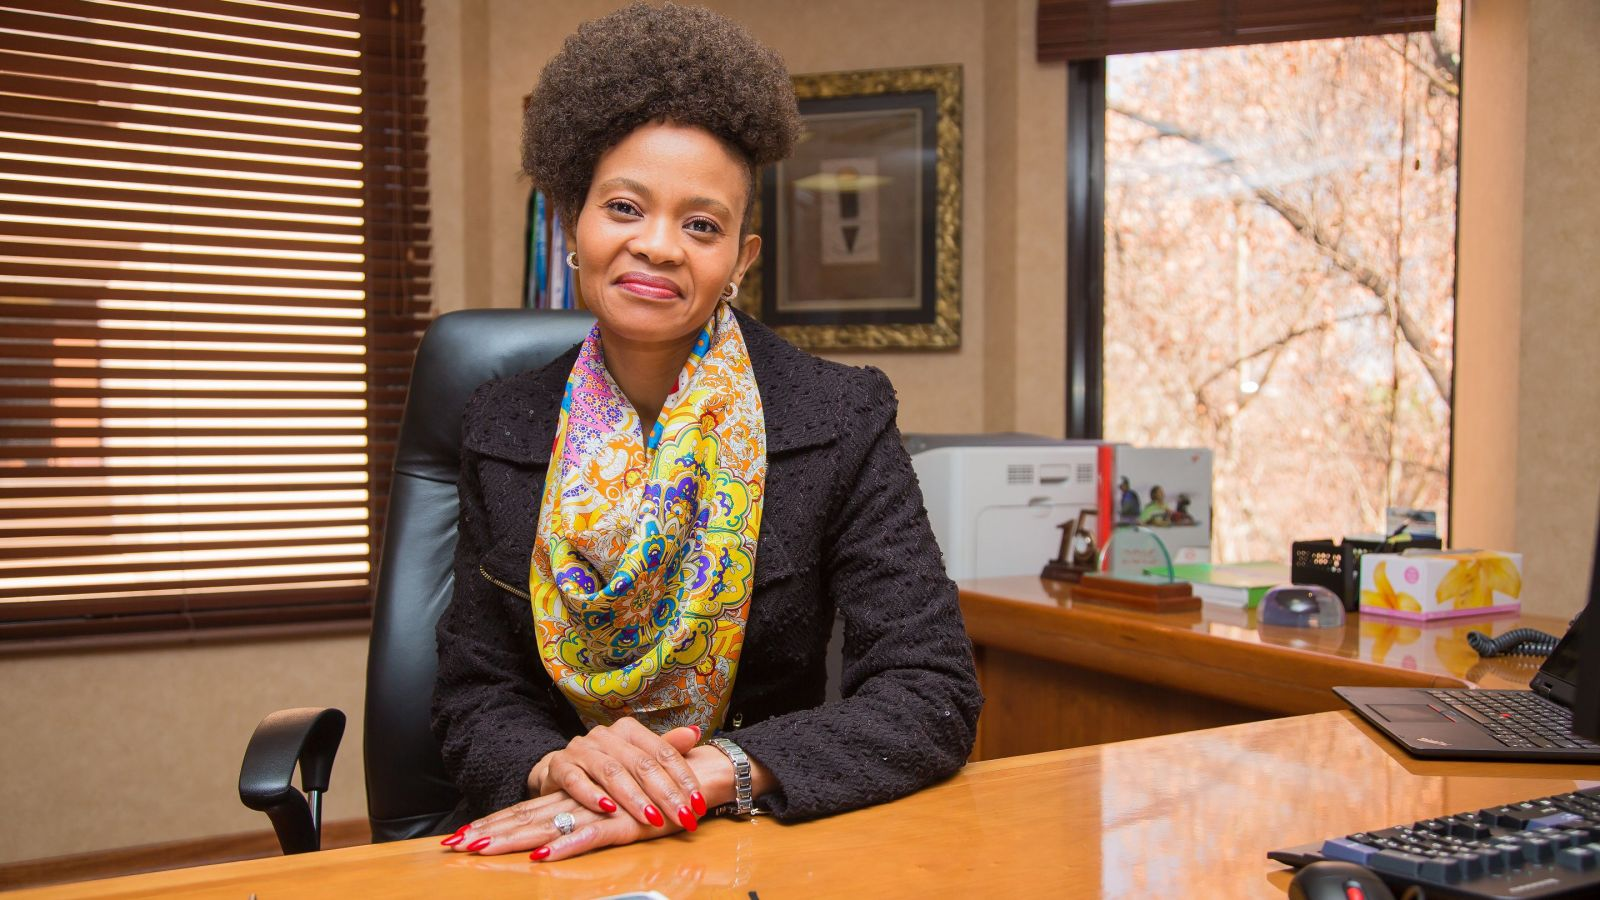 Ms Shulami Qalinge has been appointed Chief Executive (CE) of Transnet National Ports Authority (TNPA), becoming the first female CE of the organisation.